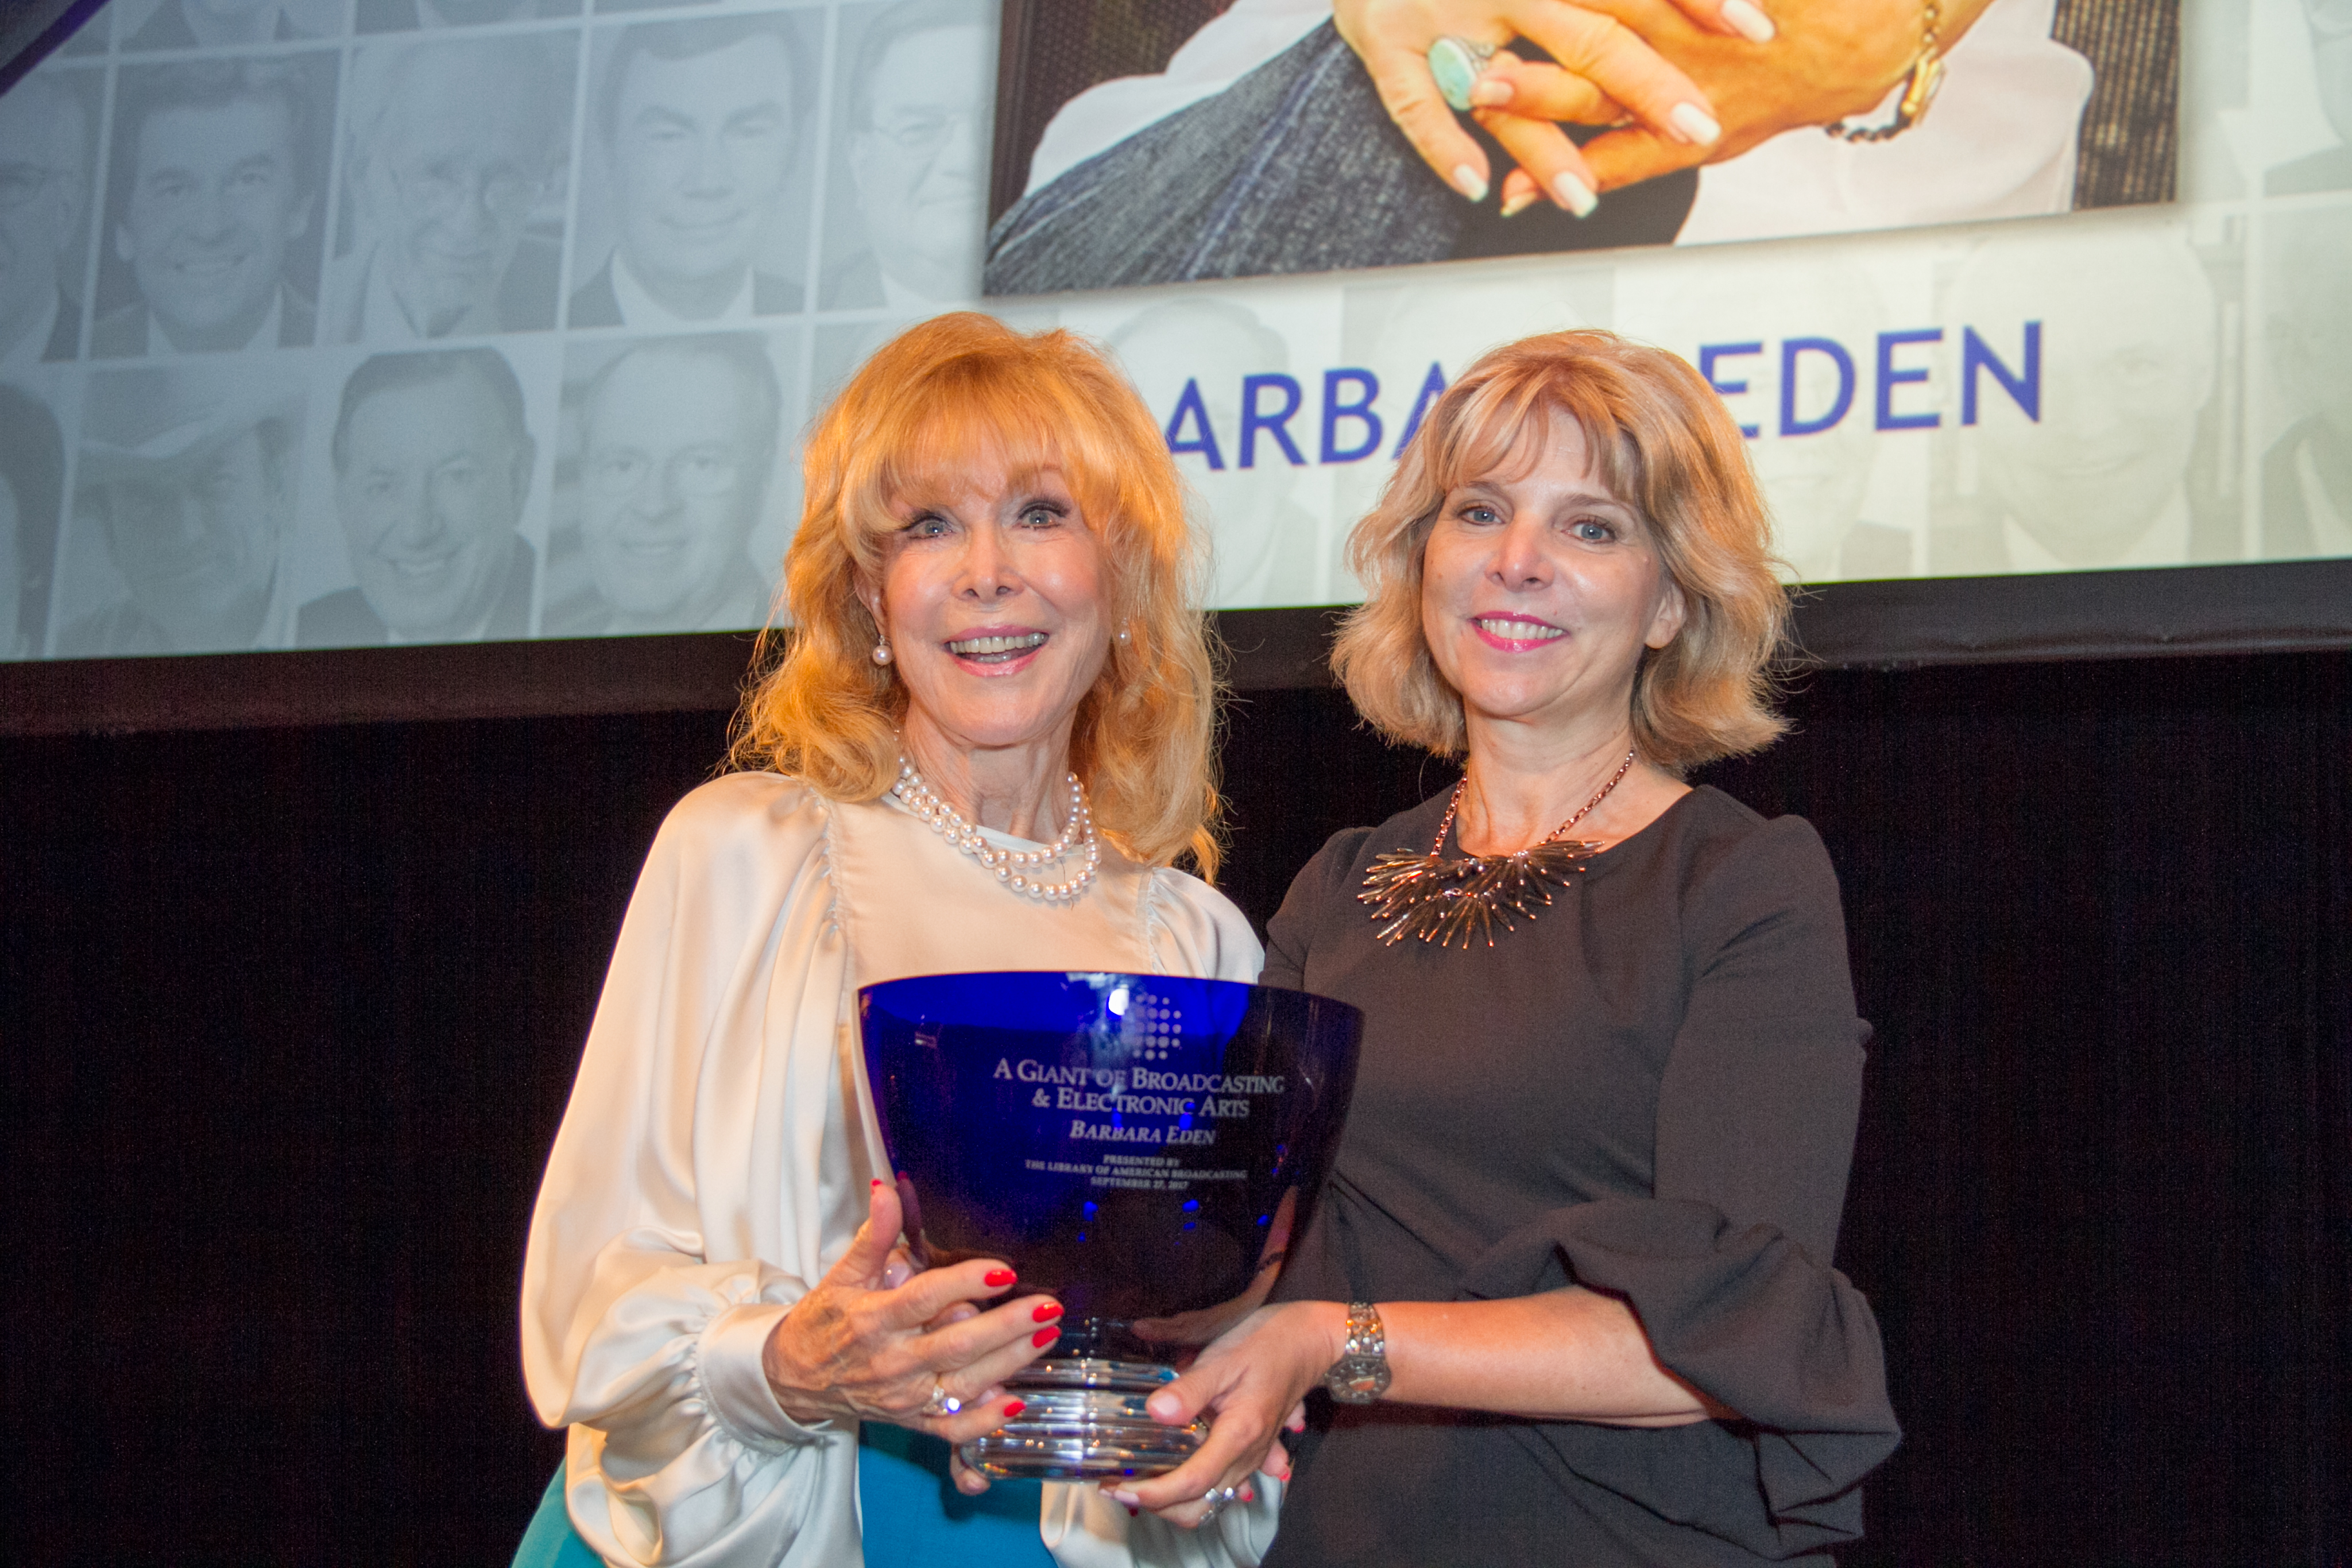 2017 Honoree Barbara Eden accepting her Giants award